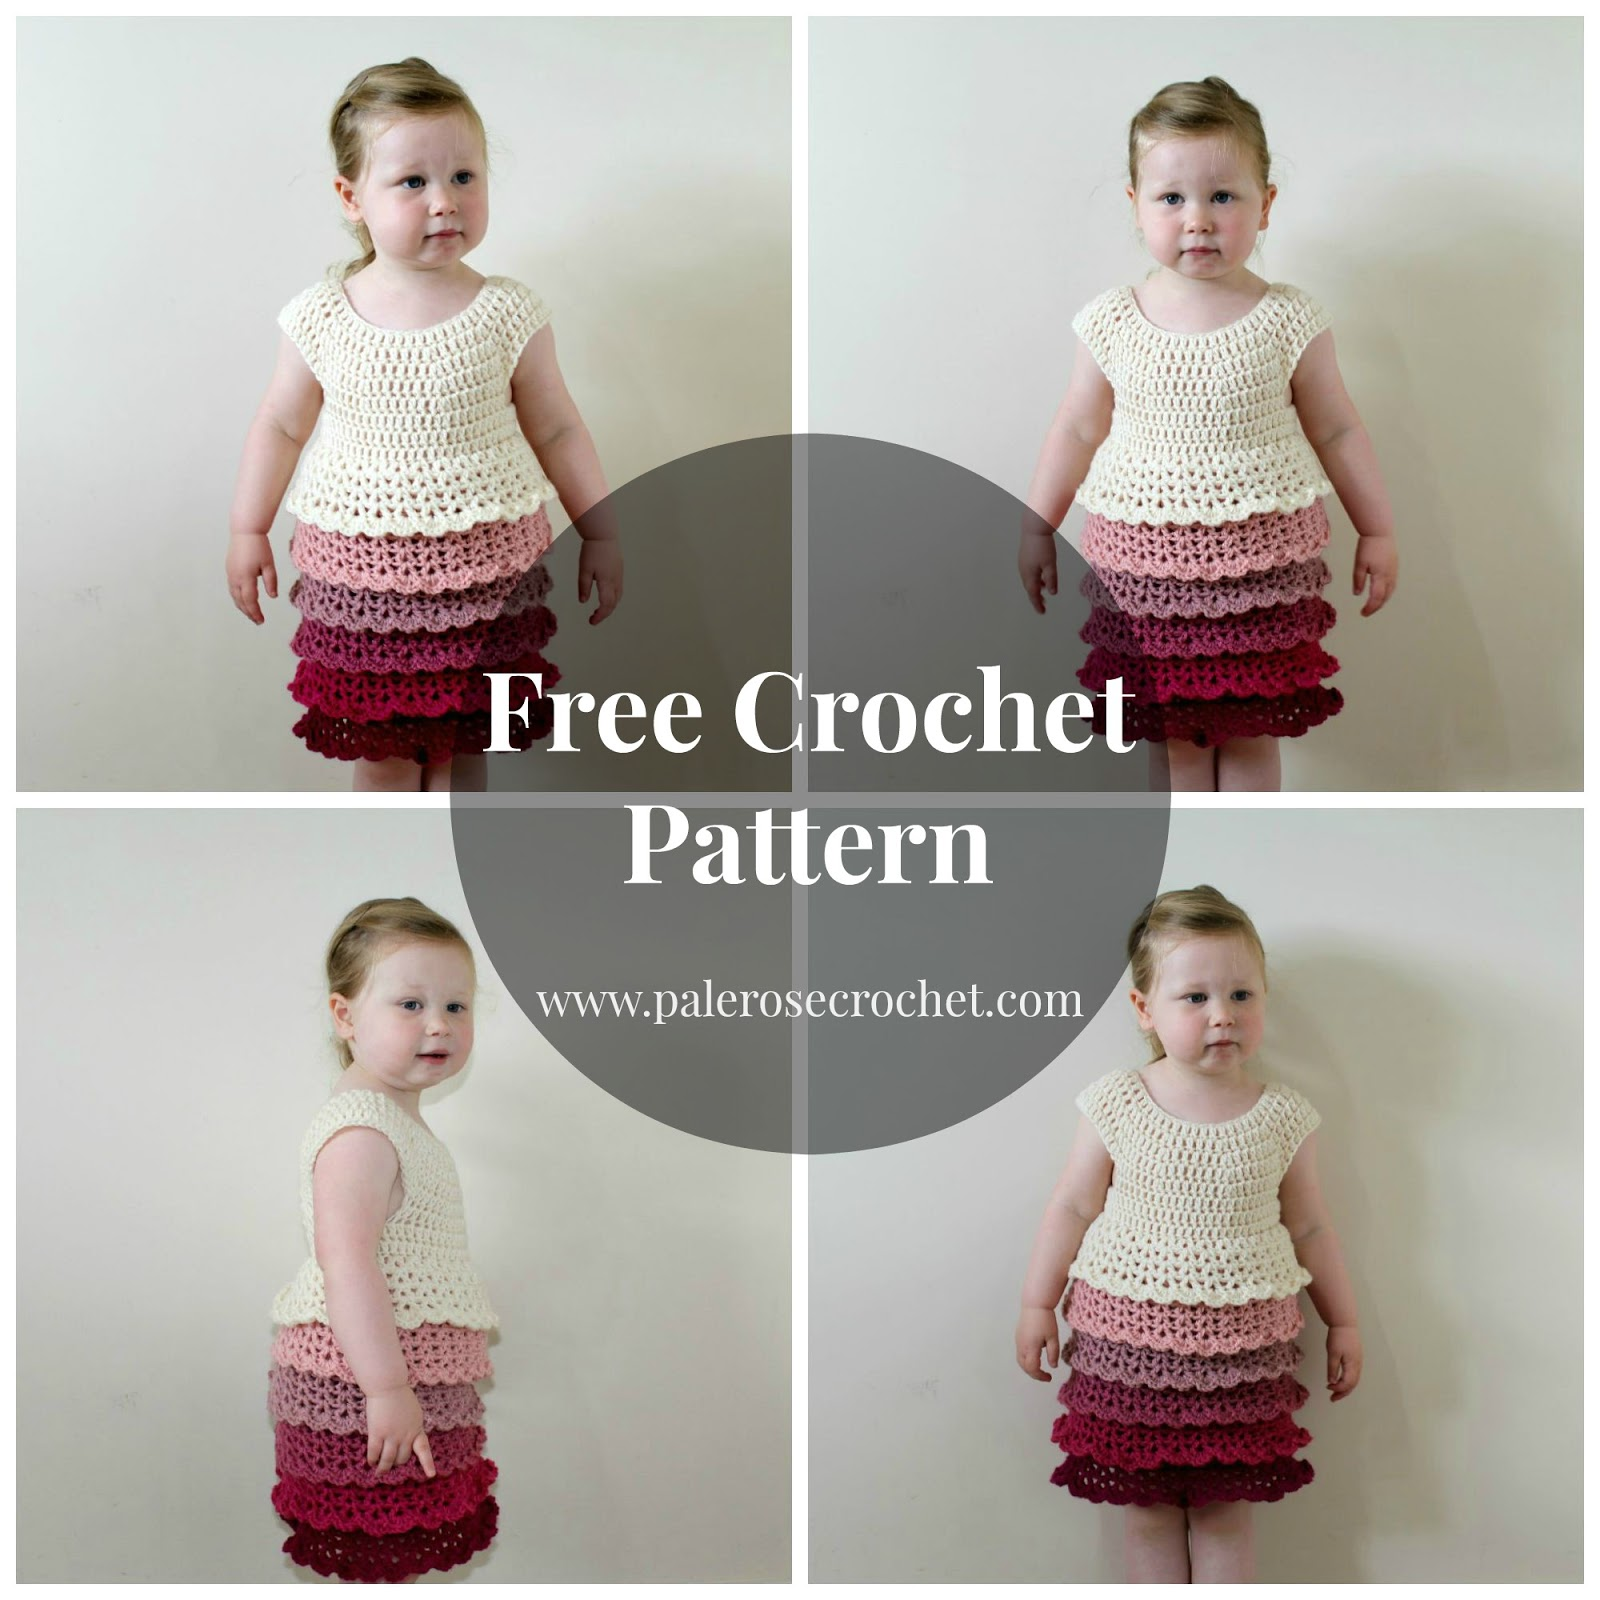 Crochet patterns galore toddler layer frill dress toddler layer frill dress free crochet pattern toddler layer frill dress bankloansurffo Image collections